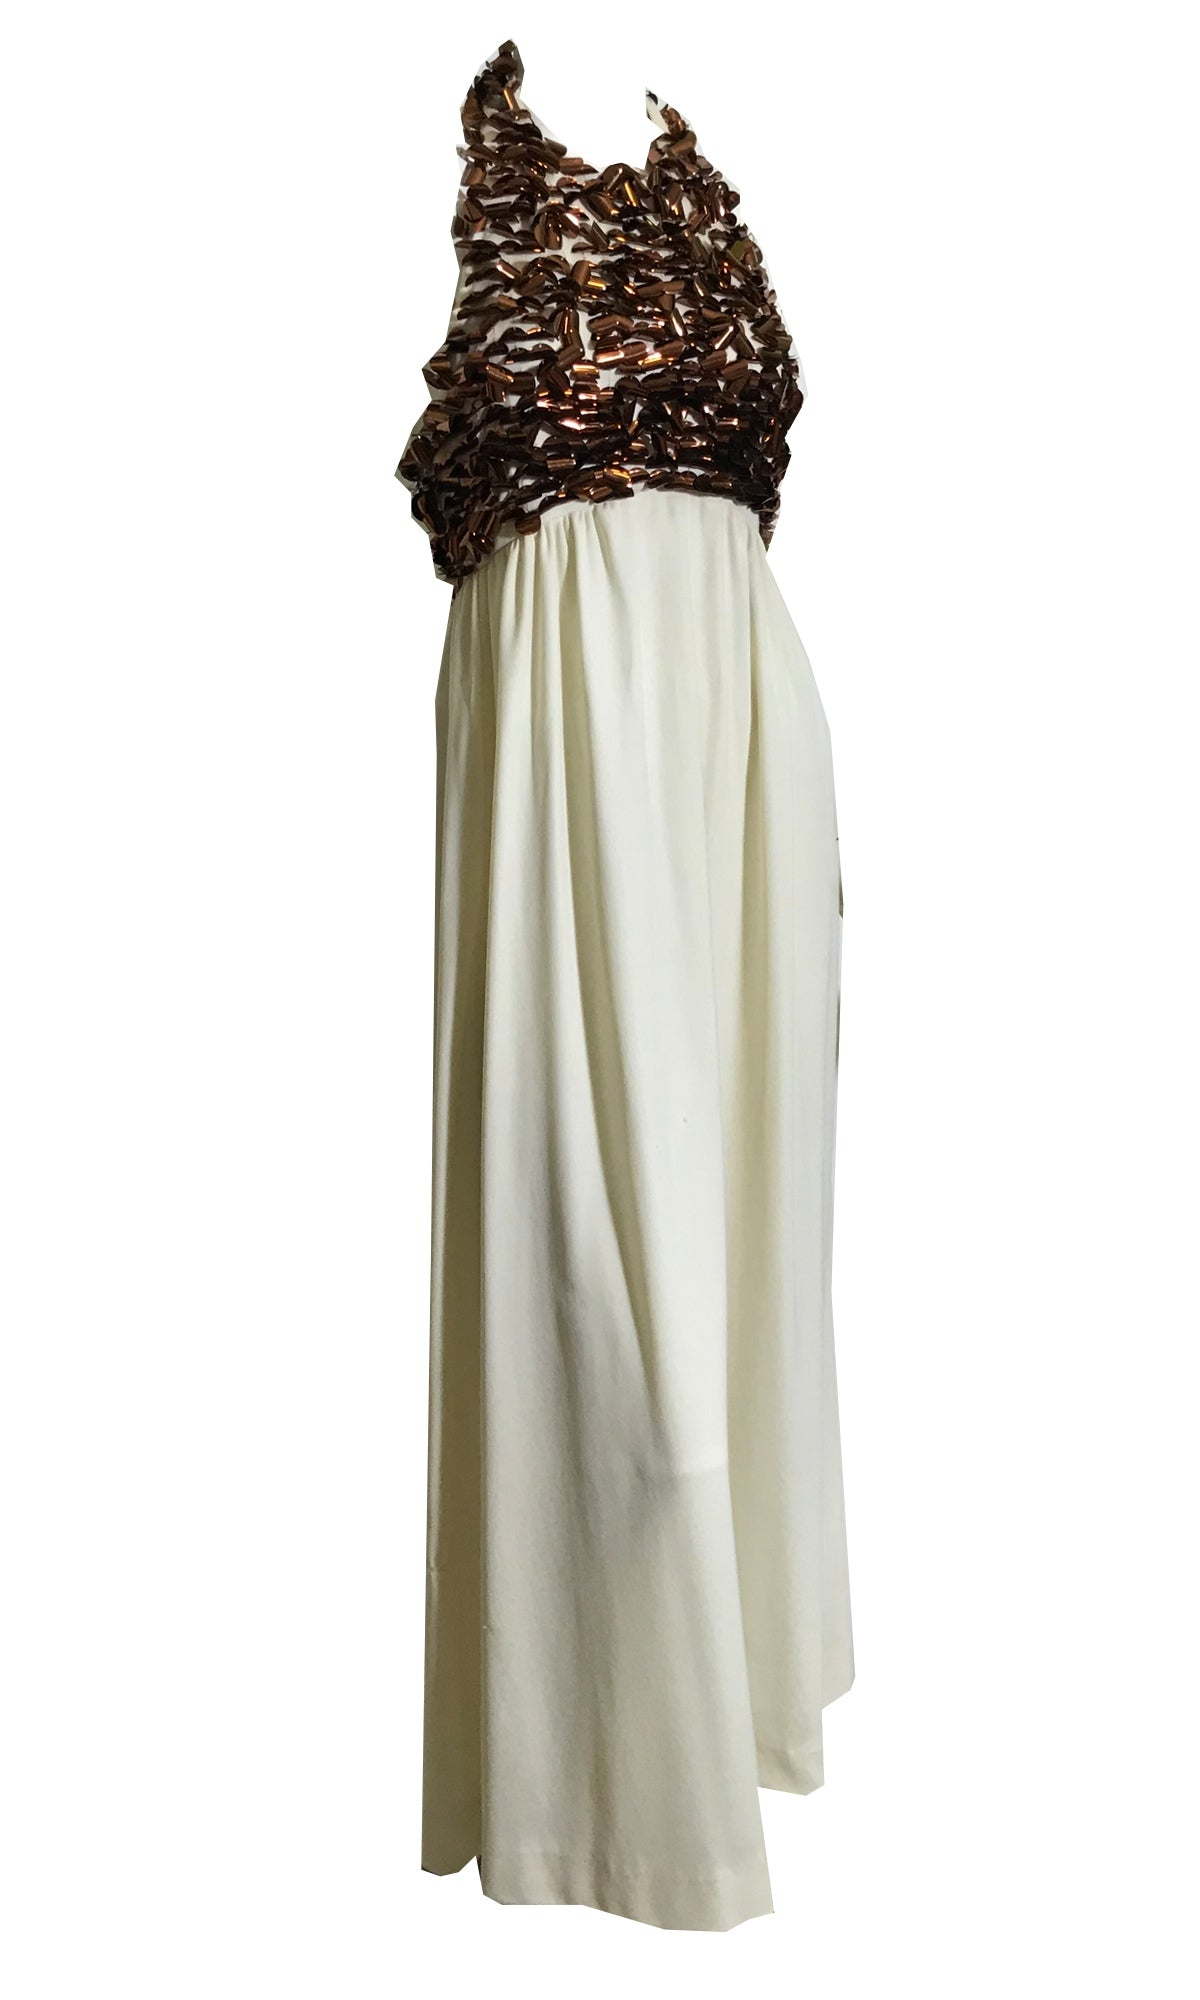 Bronze Paillette Adorned Halter Maxi Dress circa 1970s